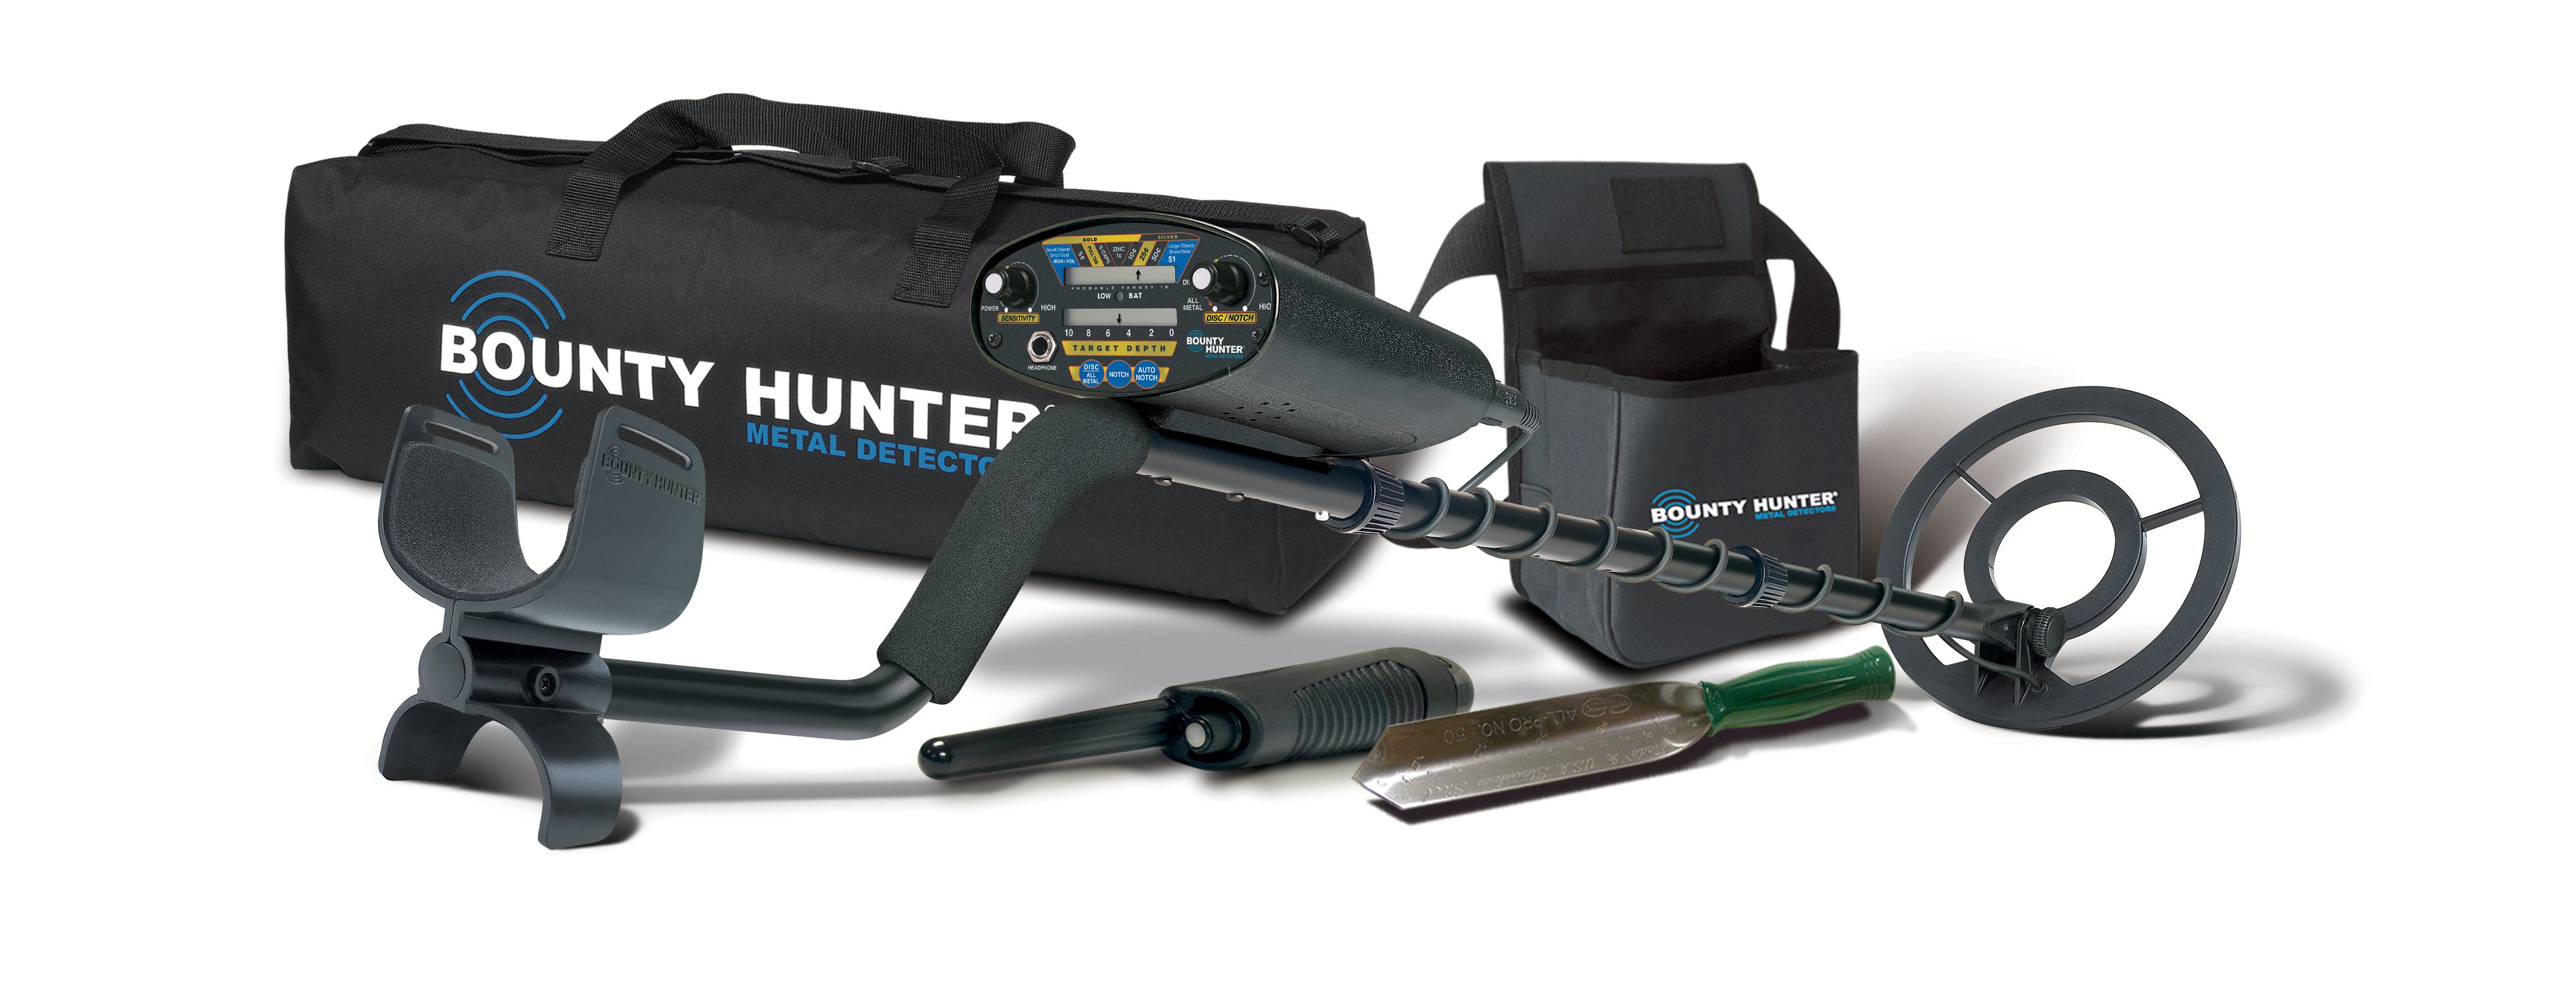 Bounty Hunter Pioneer 202 Metal Detector by First Texas Products